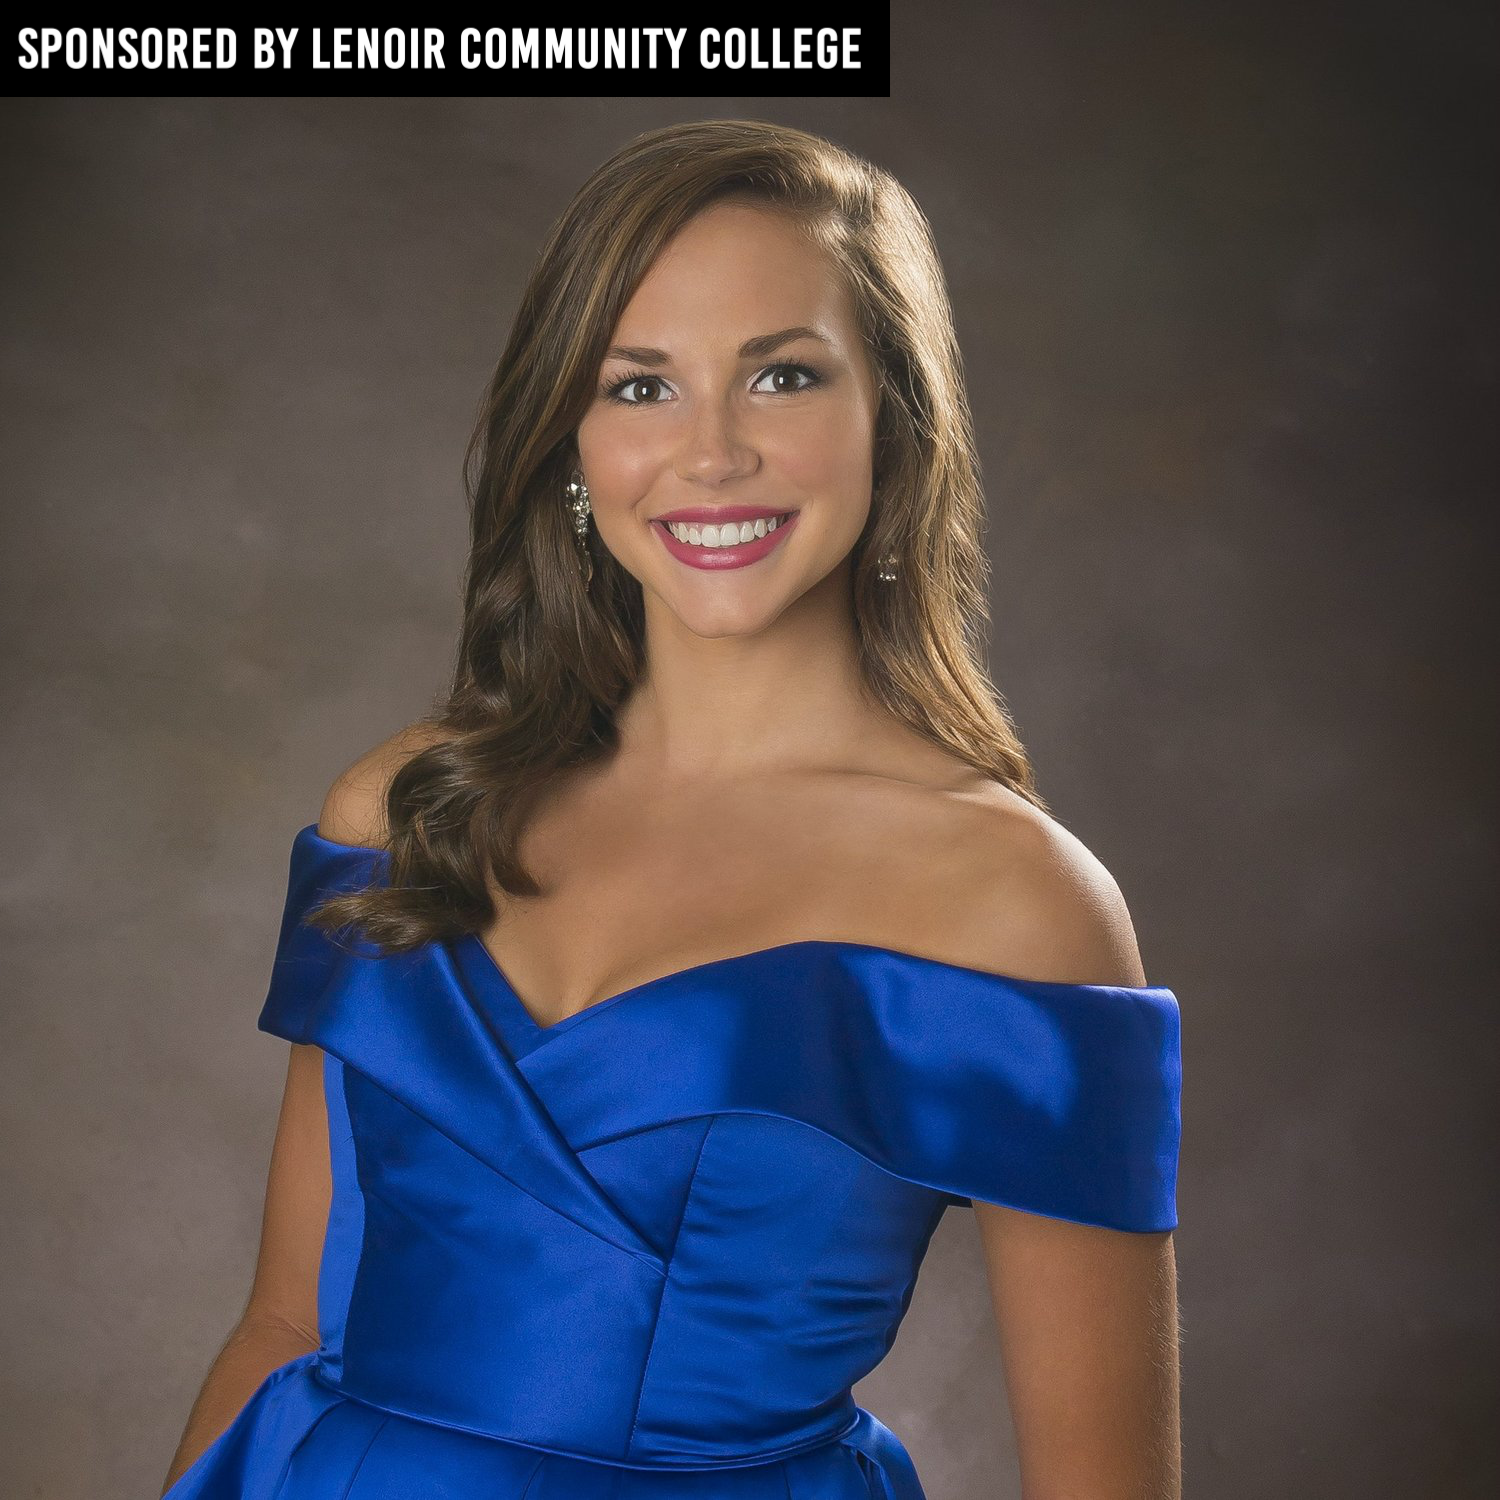 The Distinguished Young Women of Lenoir County program proudly presents Anne-Wesley Taylor, Distinguished Young Woman of Lenoir County for 2018, in its annual program which will be held at 7 p.m. Saturday, Oct. 13, in the Performing Arts Center on the campus of Kinston High School.